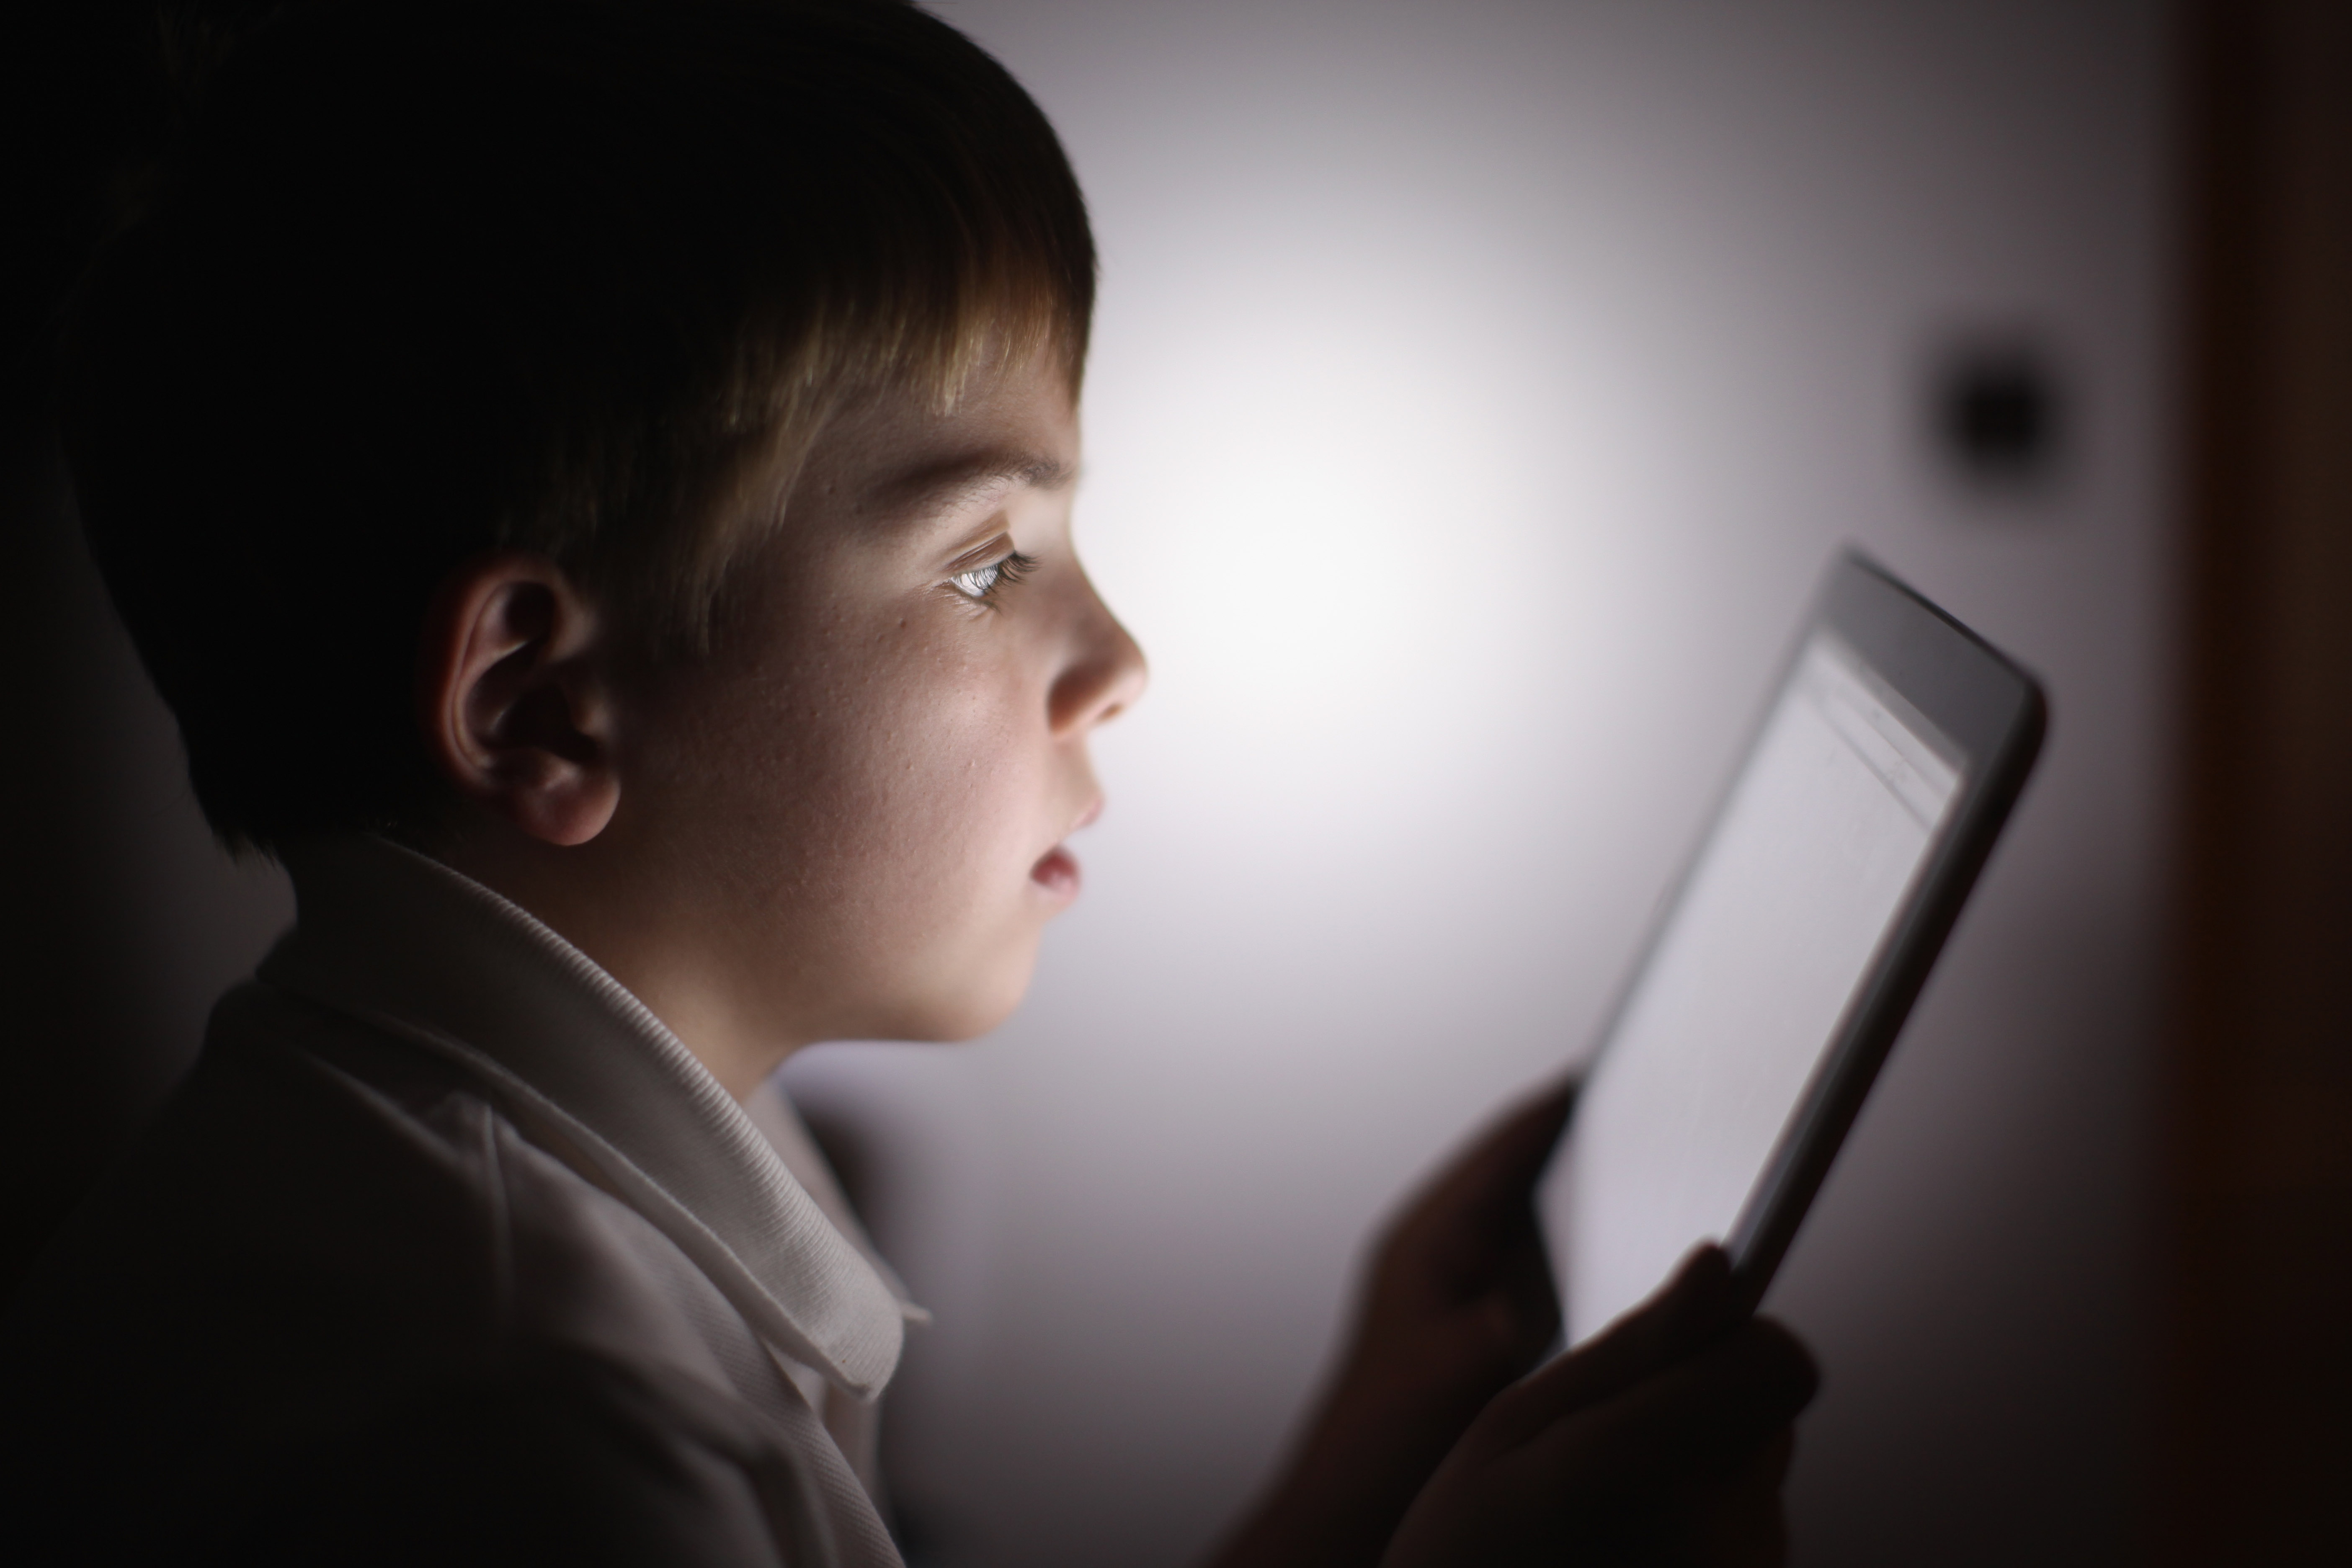 In this file photo, a ten-year-old boy uses an Apple iPad tablet computer on November 29, 2011. New guidelines by the AAP recommend that parents show young children high quality, educational programming, such as Sesame Street.